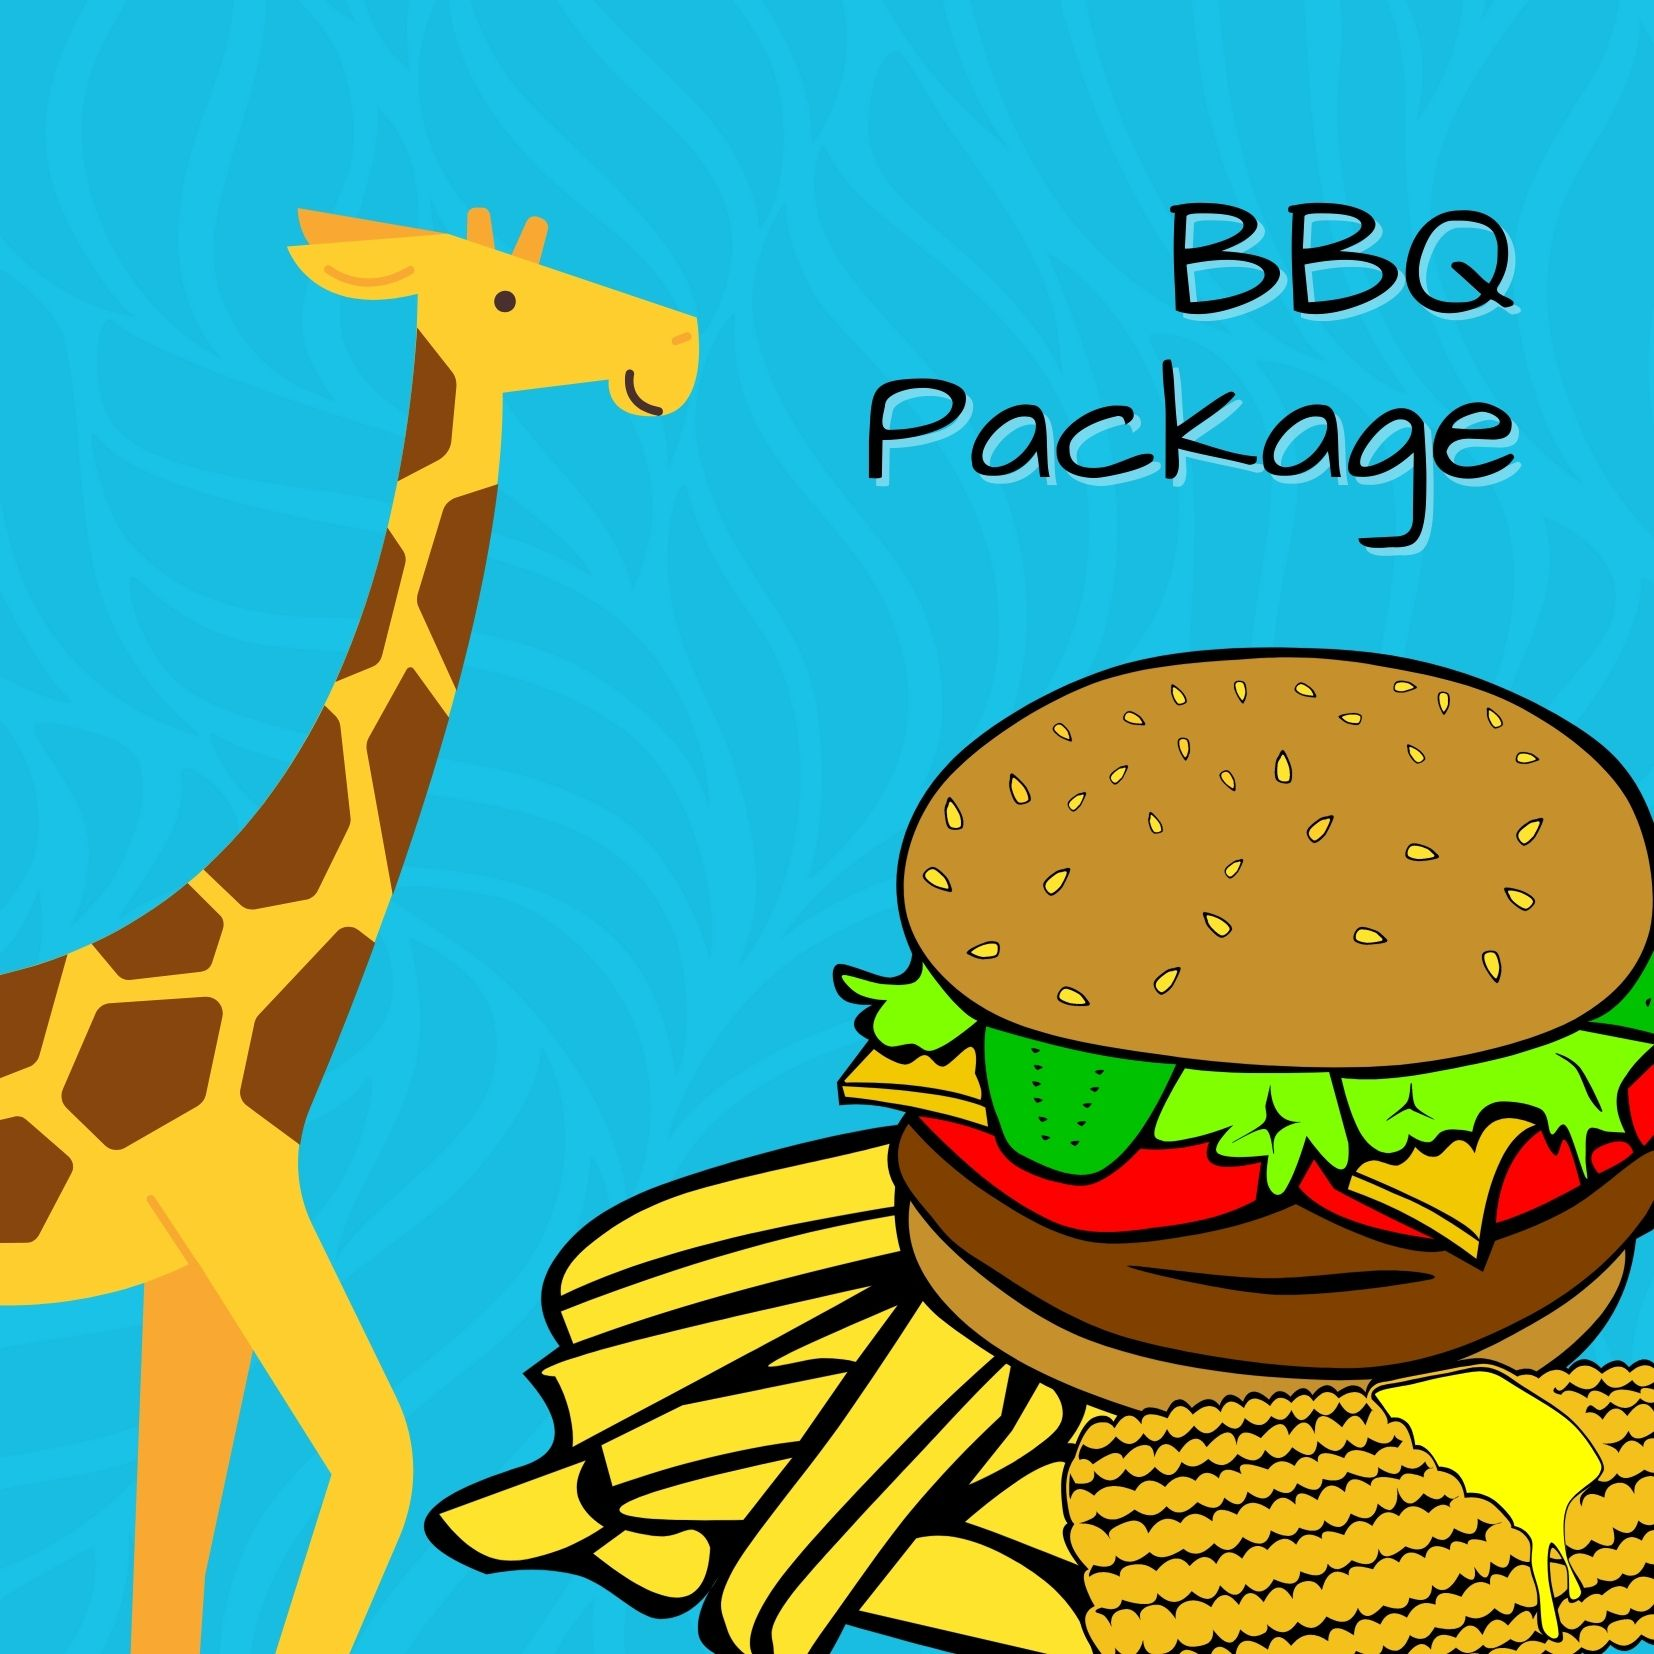 Announcing late opening from Sat 10th July with special summer combined entry BBQ package now available to book